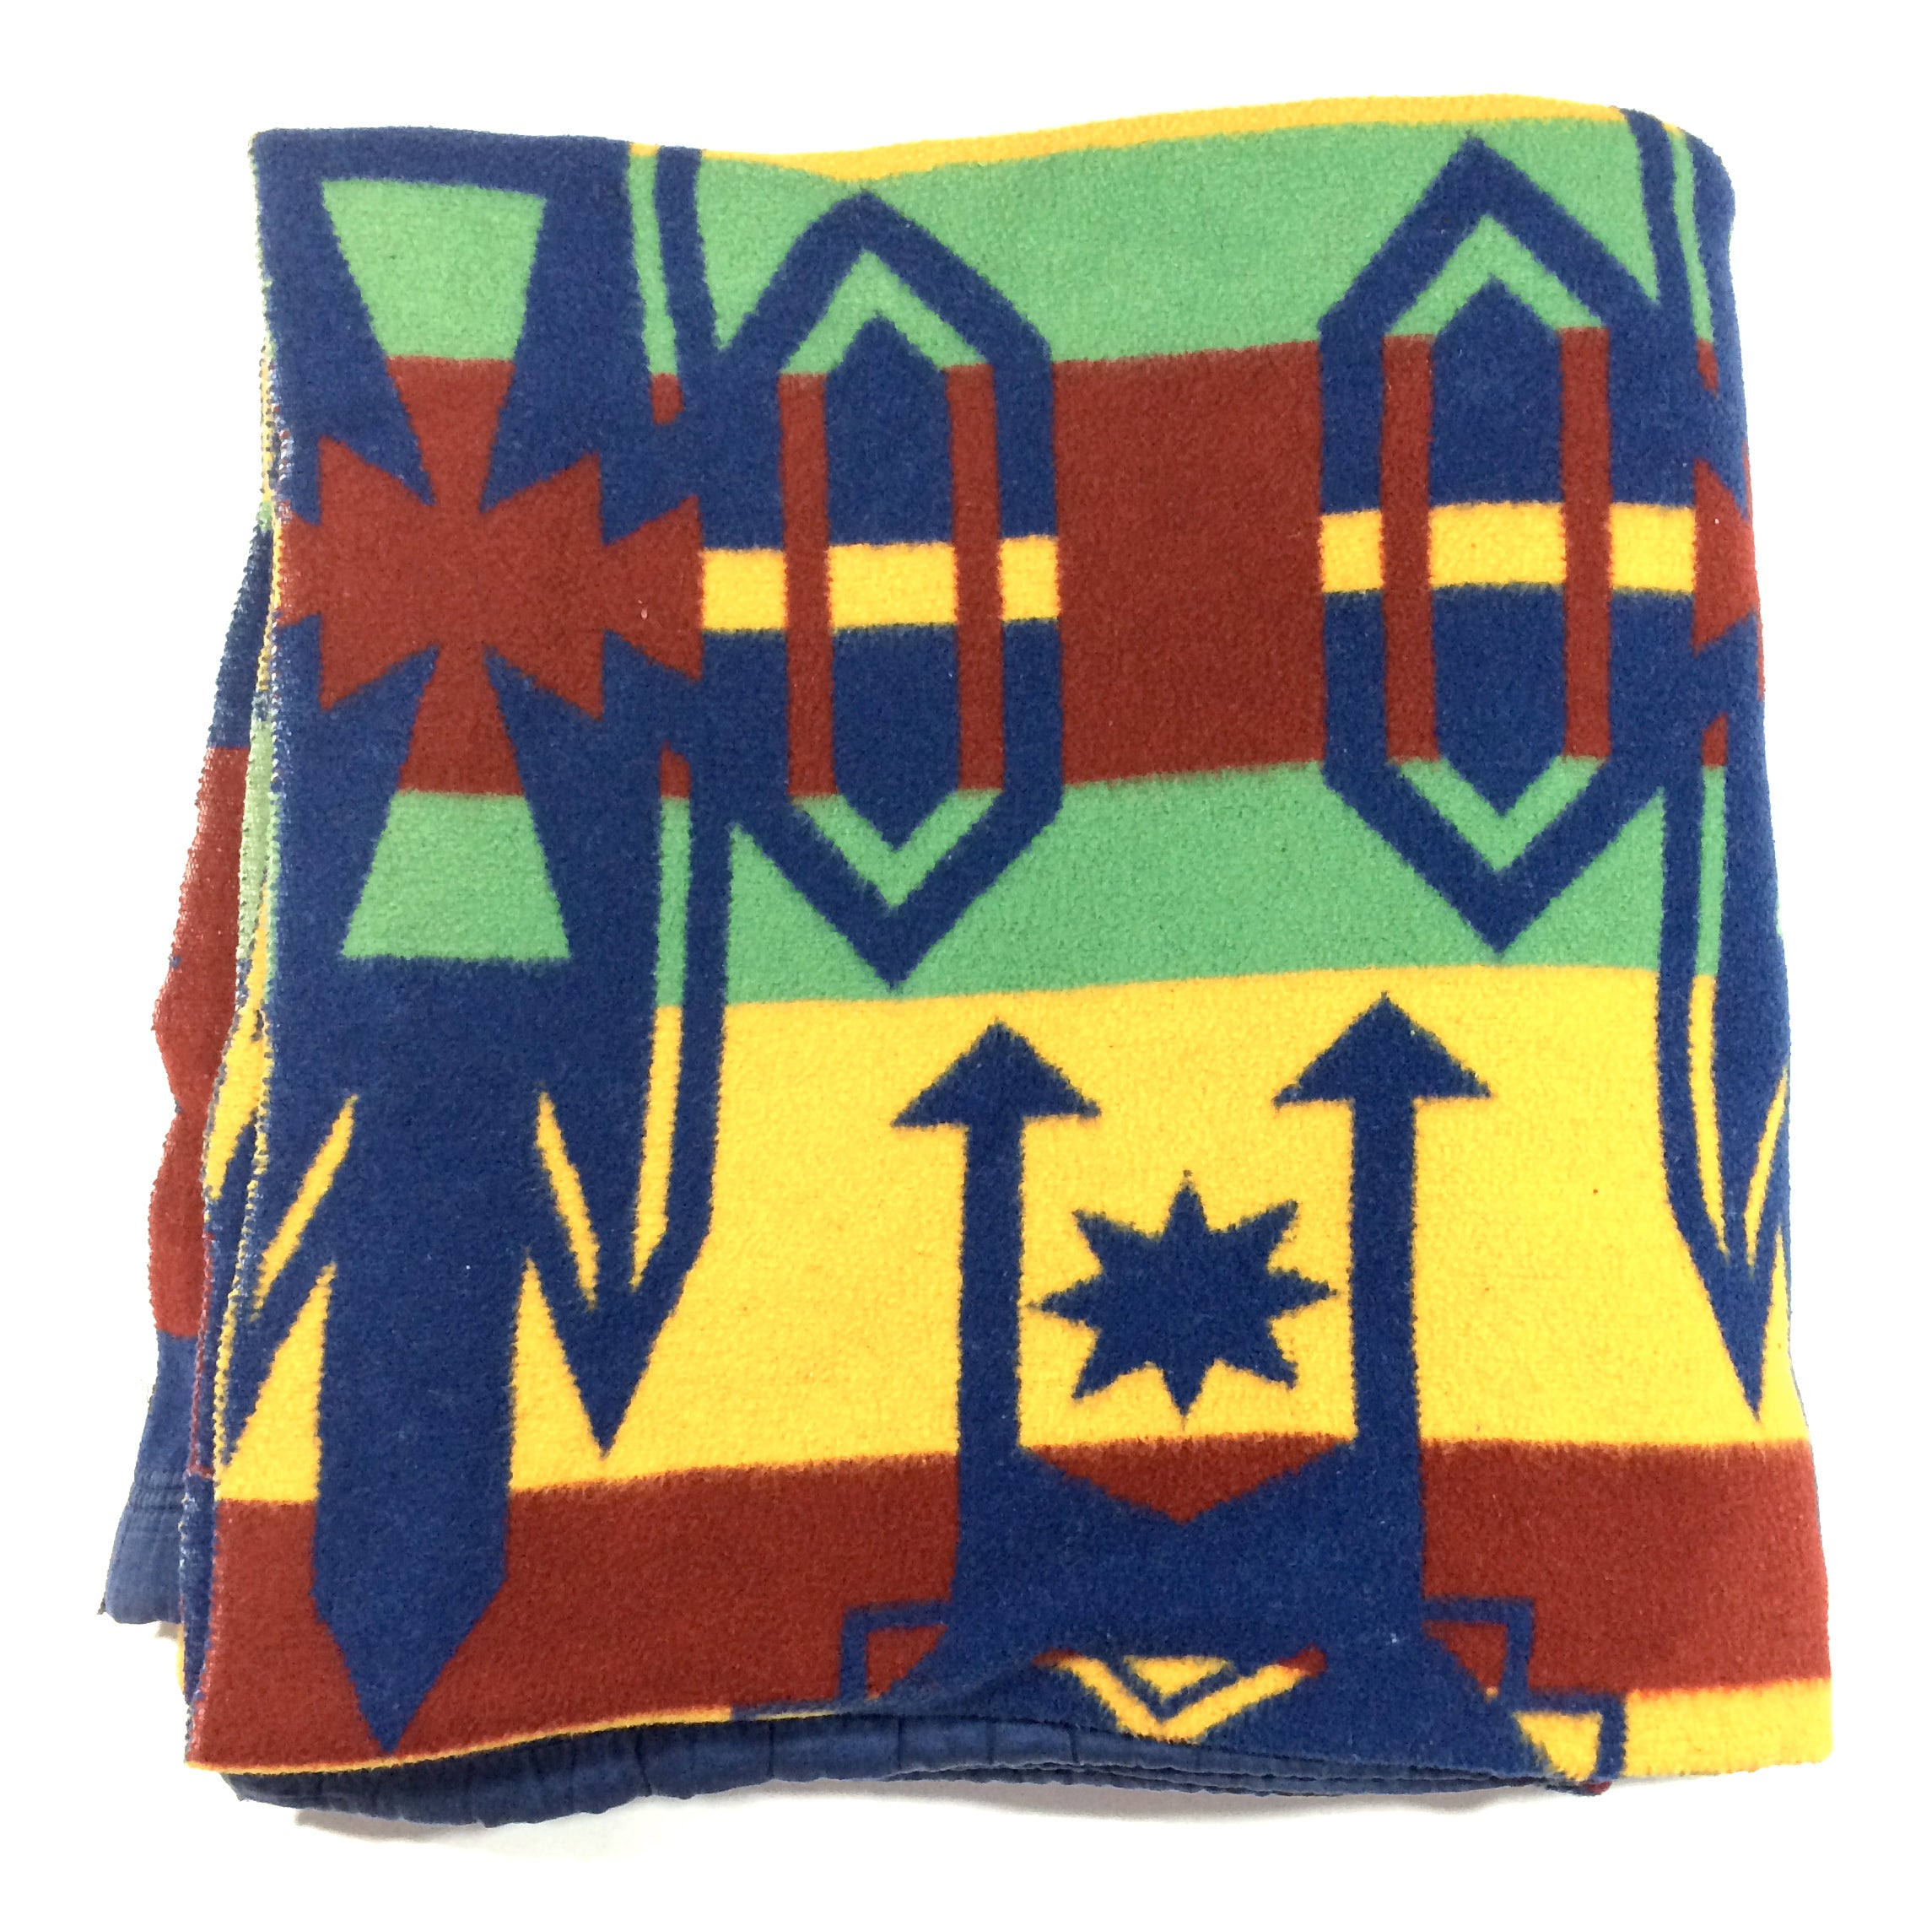 Image of VINTAGE CAMP BLANKET